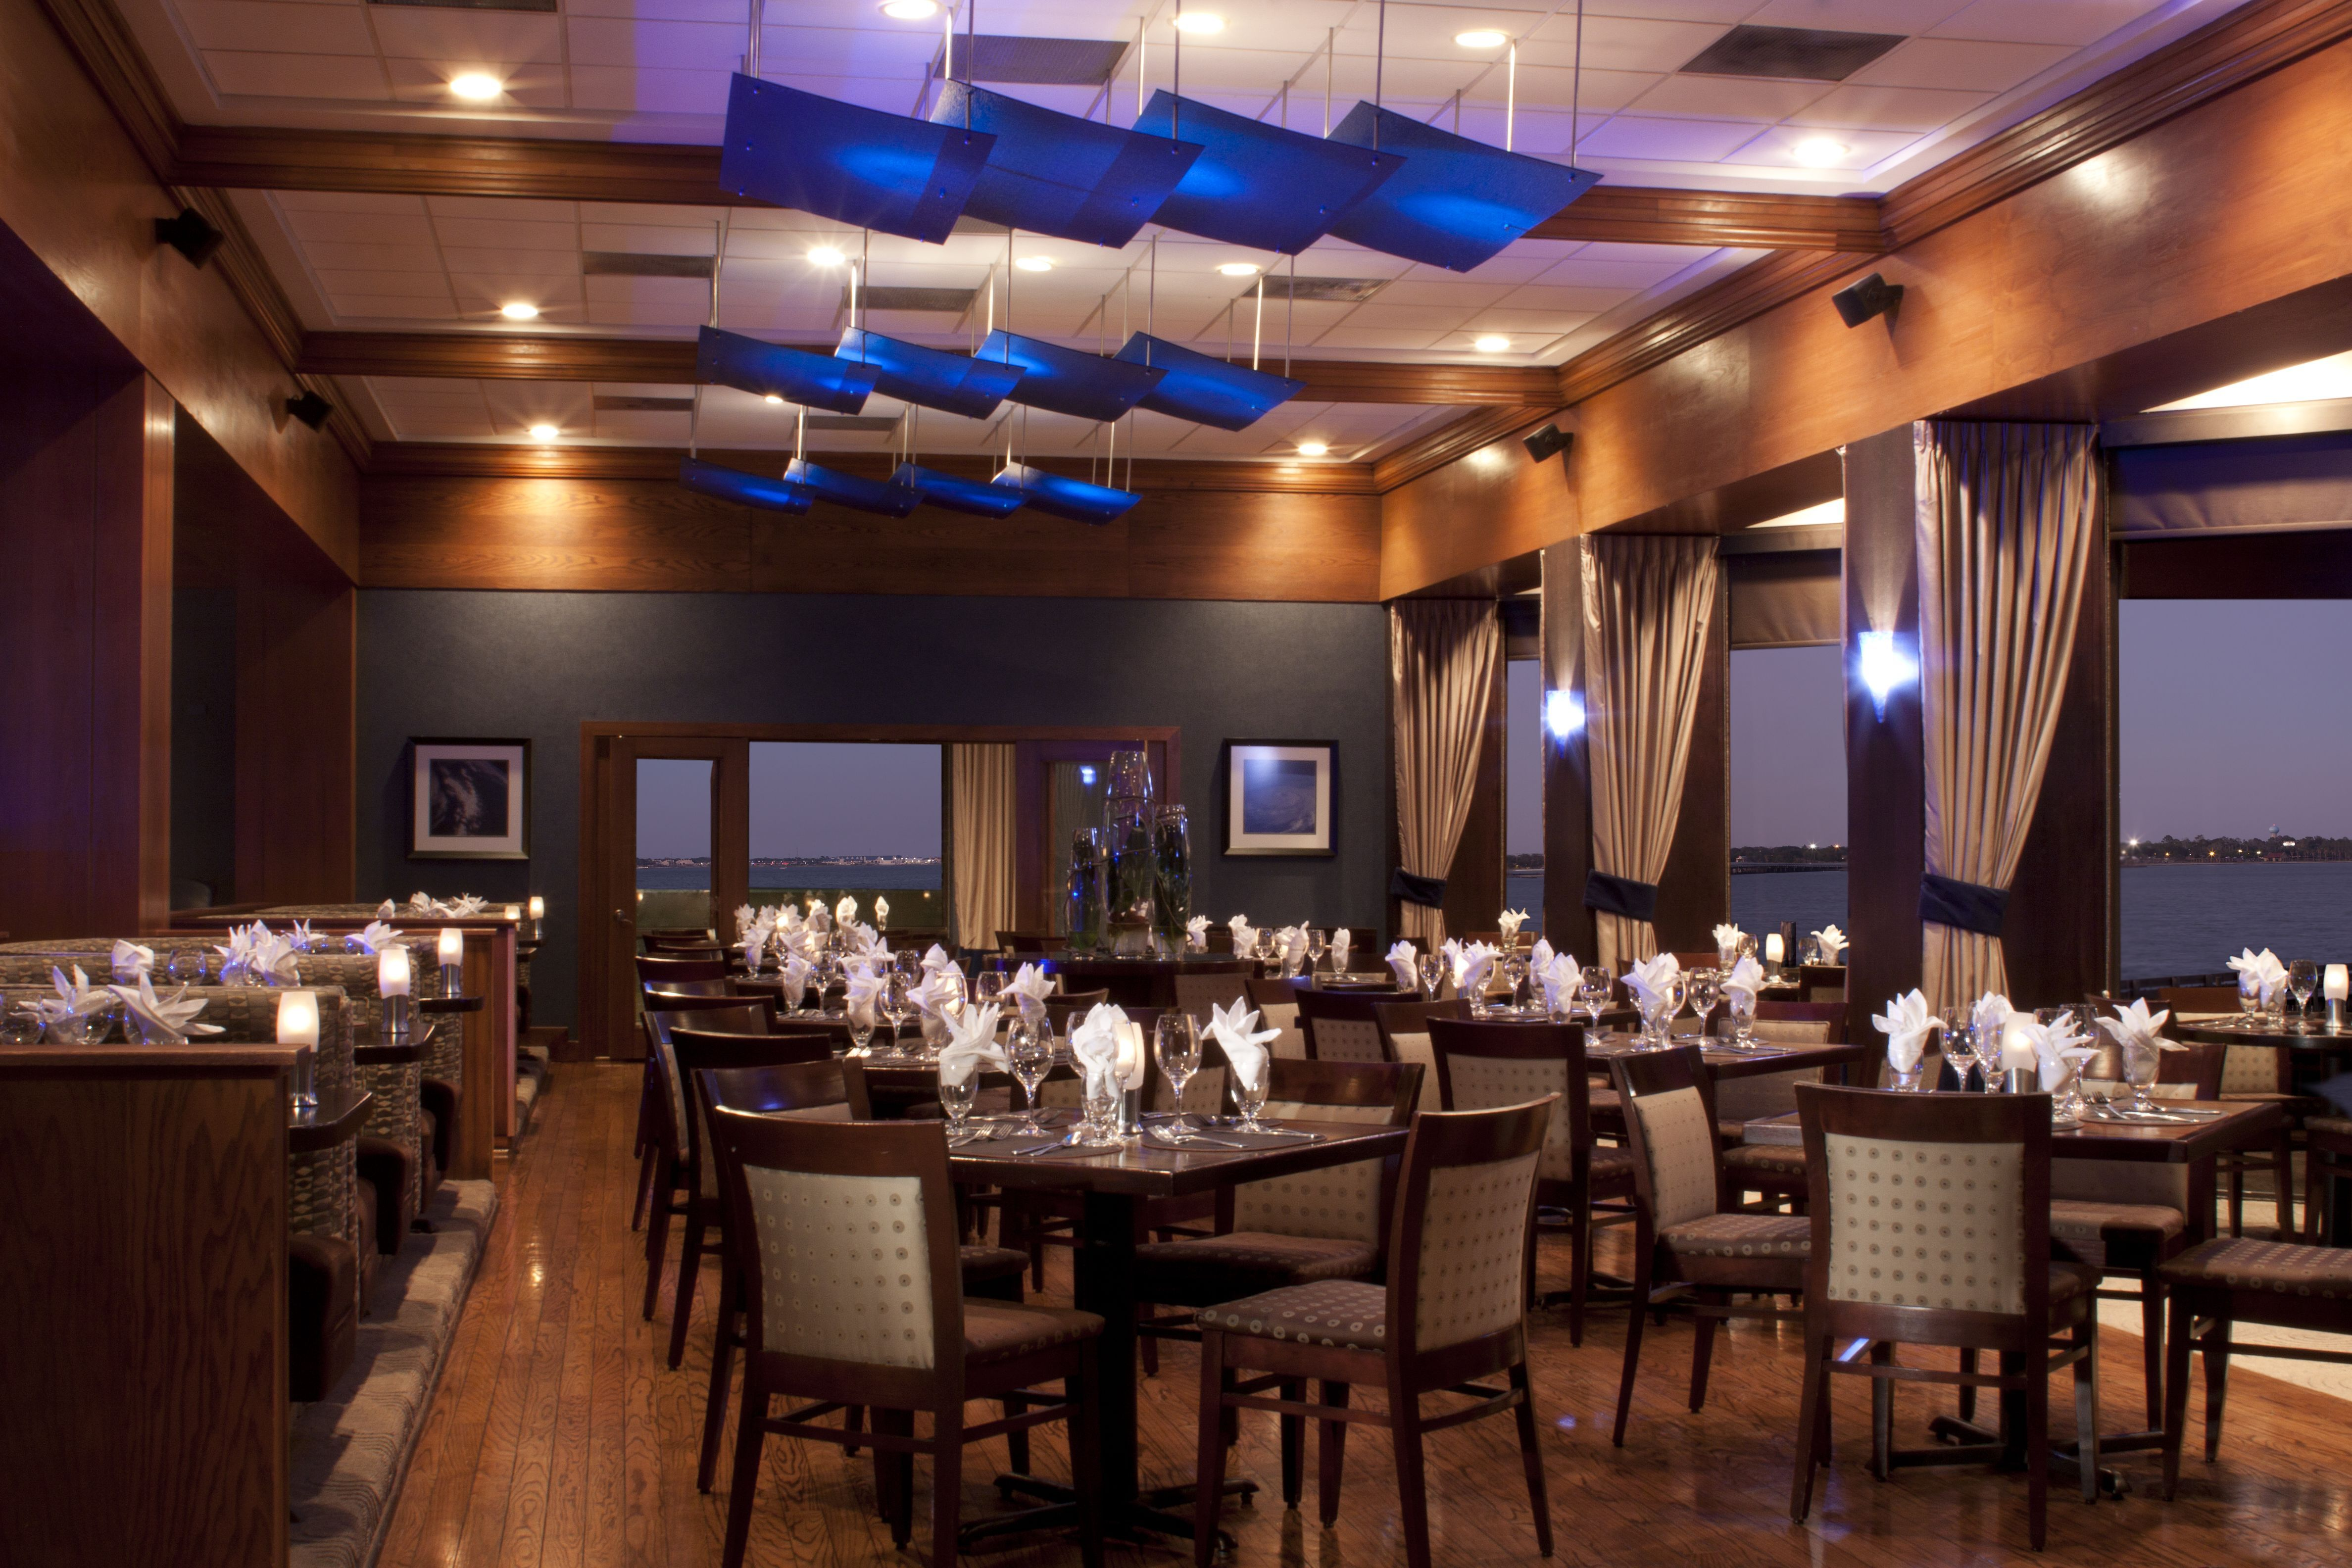 The Luna Restaurant At The Hilton Houston Nasa Clear Lake  Rooms Mesmerizing Lake Hotel Dining Room Design Ideas